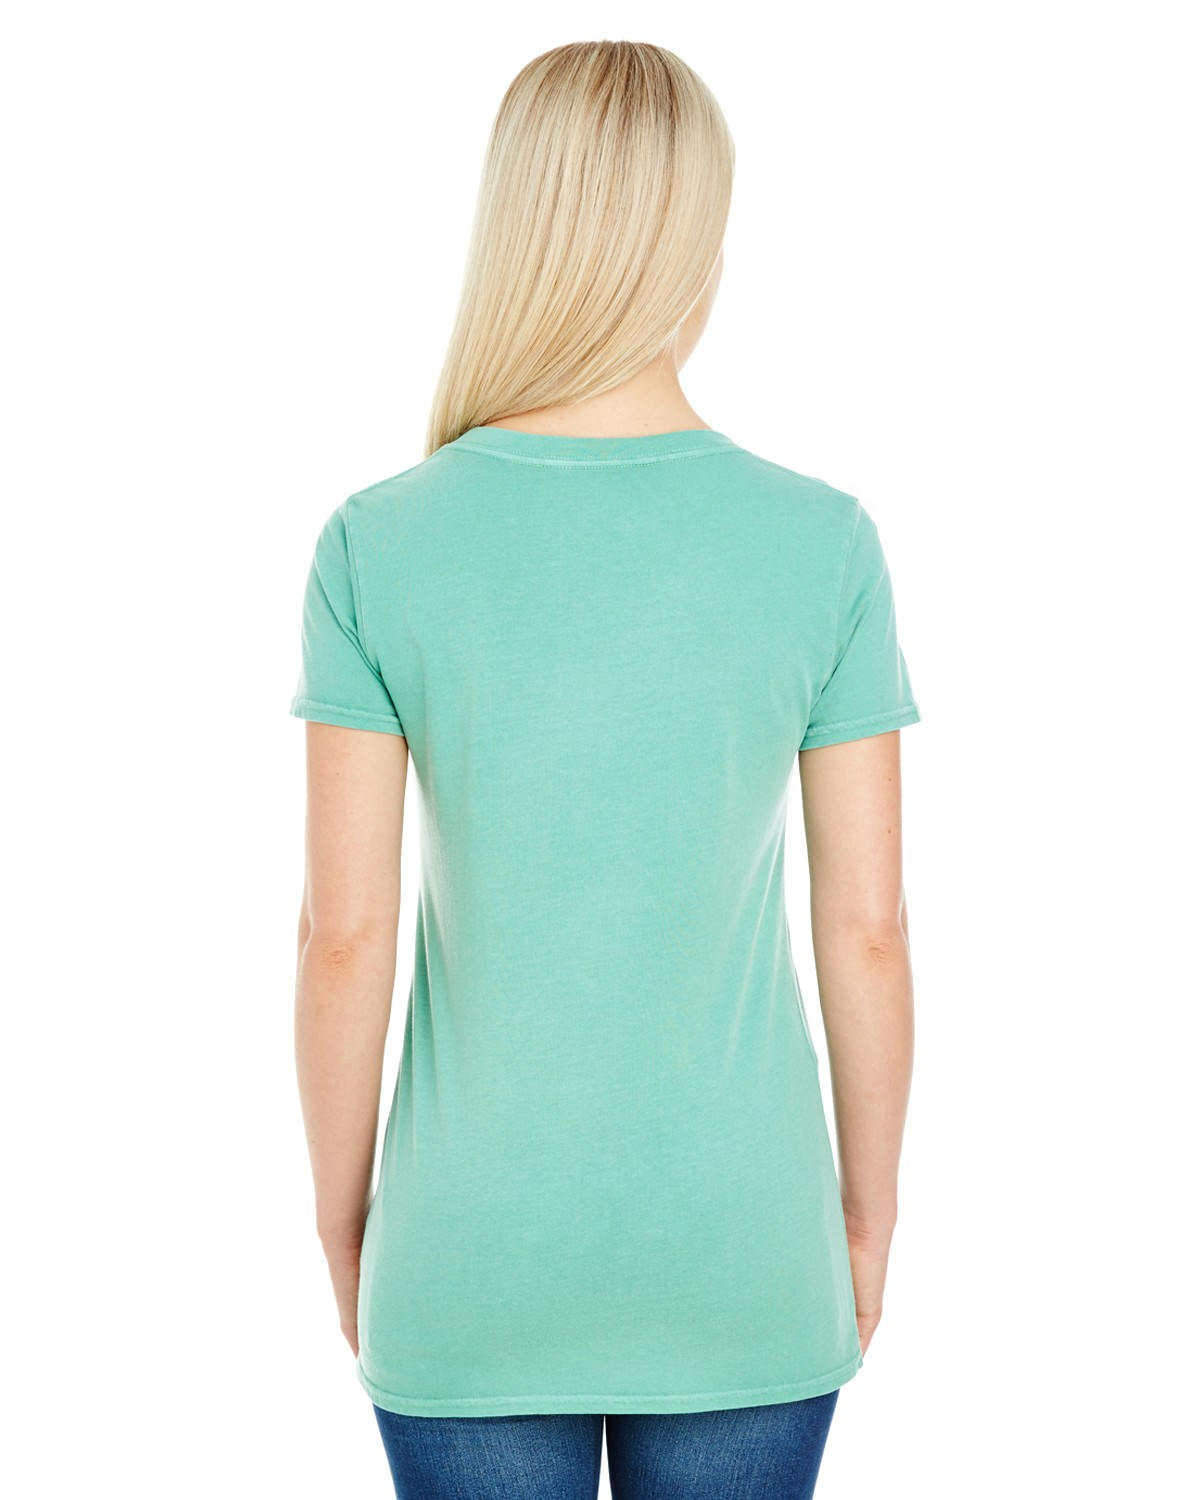 230B Threadfast Apparel SEAFOAM